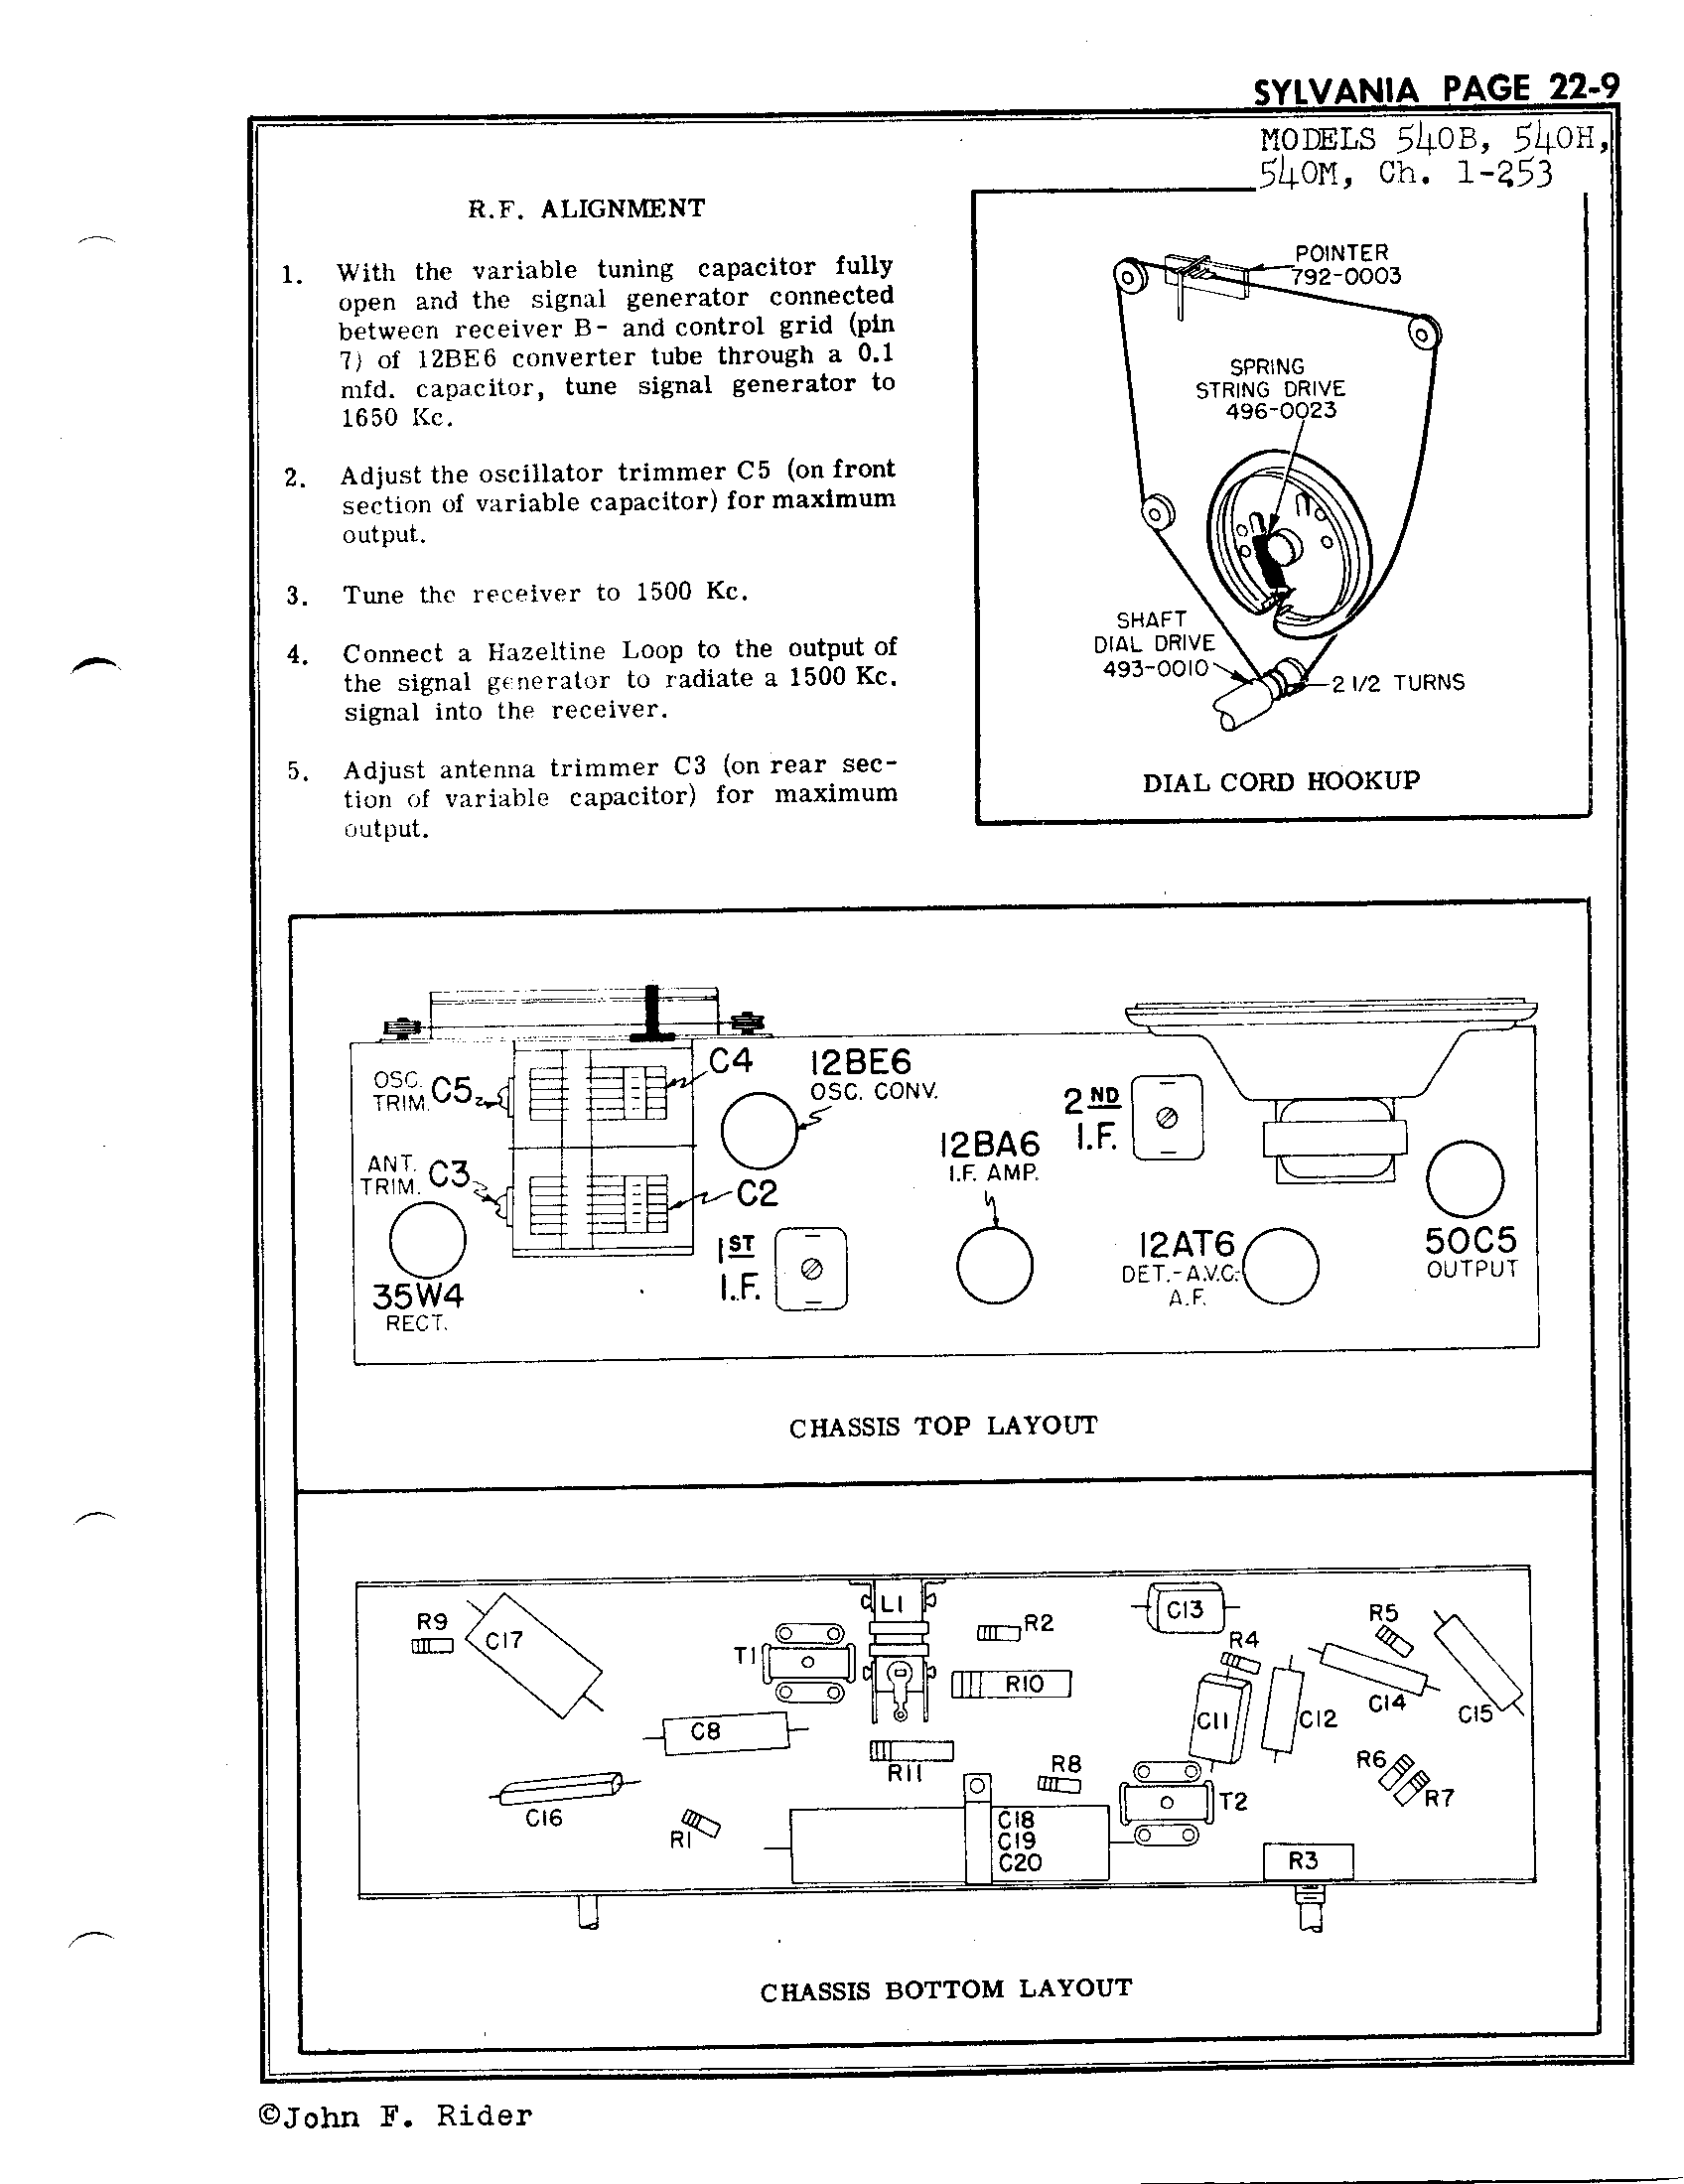 Sylvania Electric Products 540b Antique Electronic Supply. Page 2 4529 Kb Rider Manual Volume 22. Wiring. Sylvania Tube Radio Schematics At Scoala.co